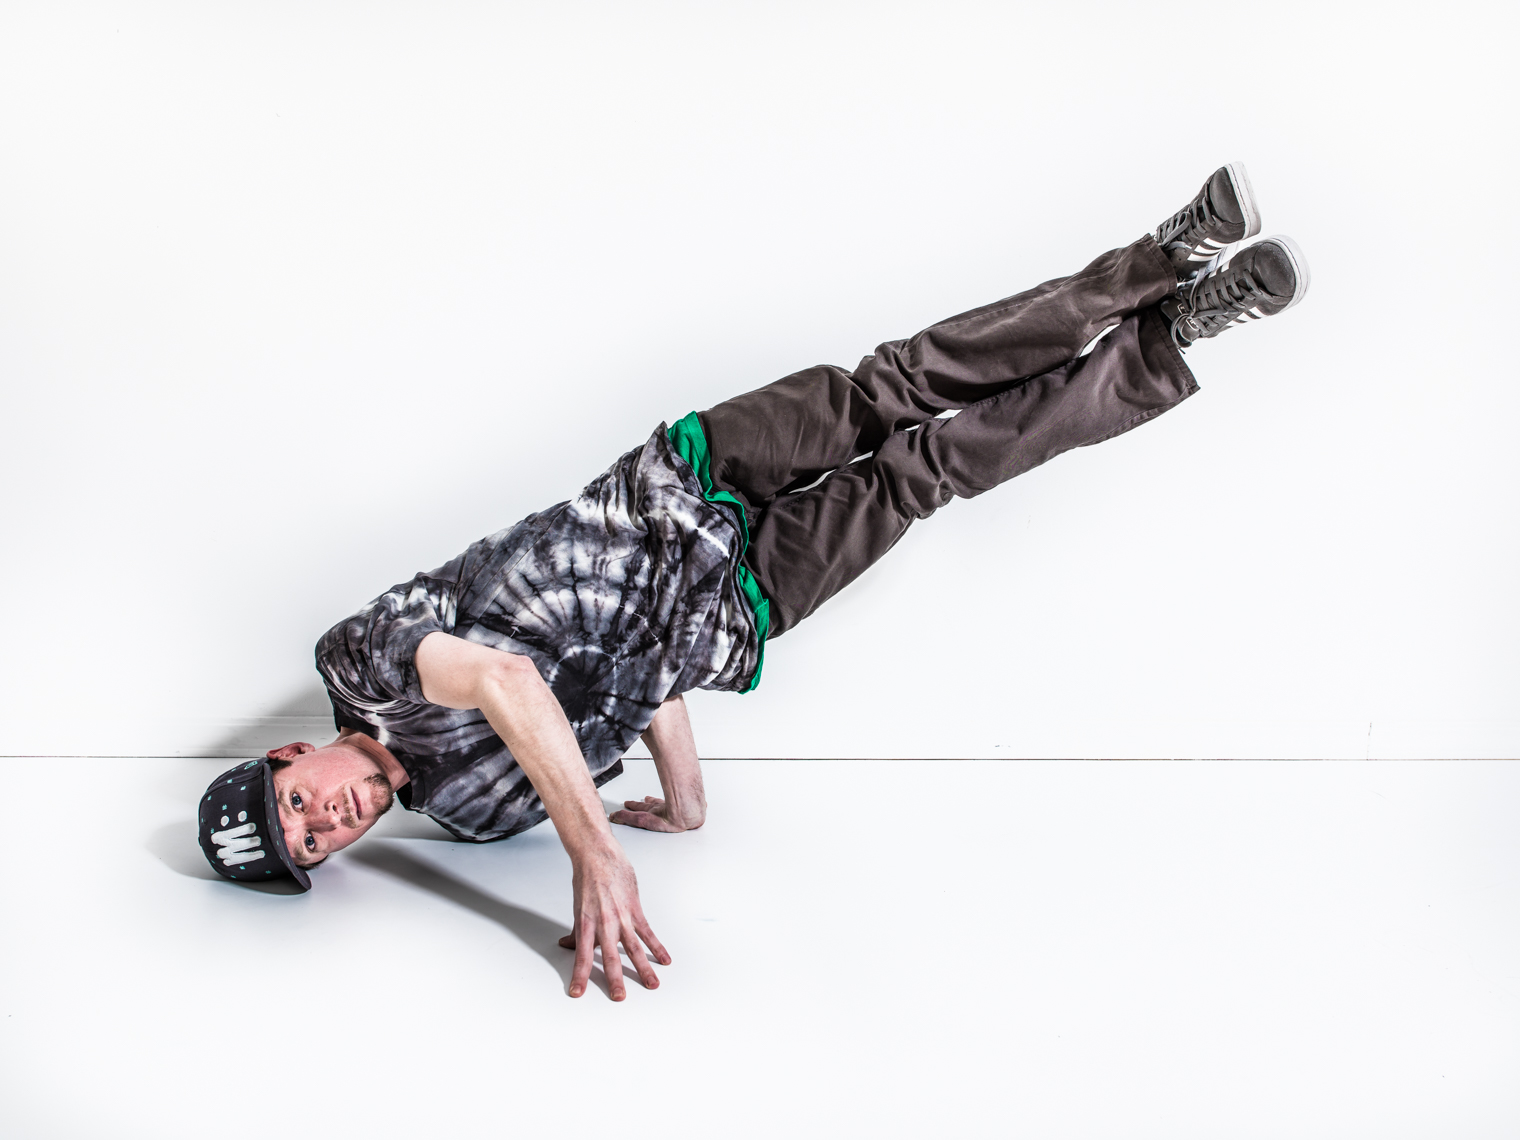 Doug, Breakdancer, Seattle WA, USA